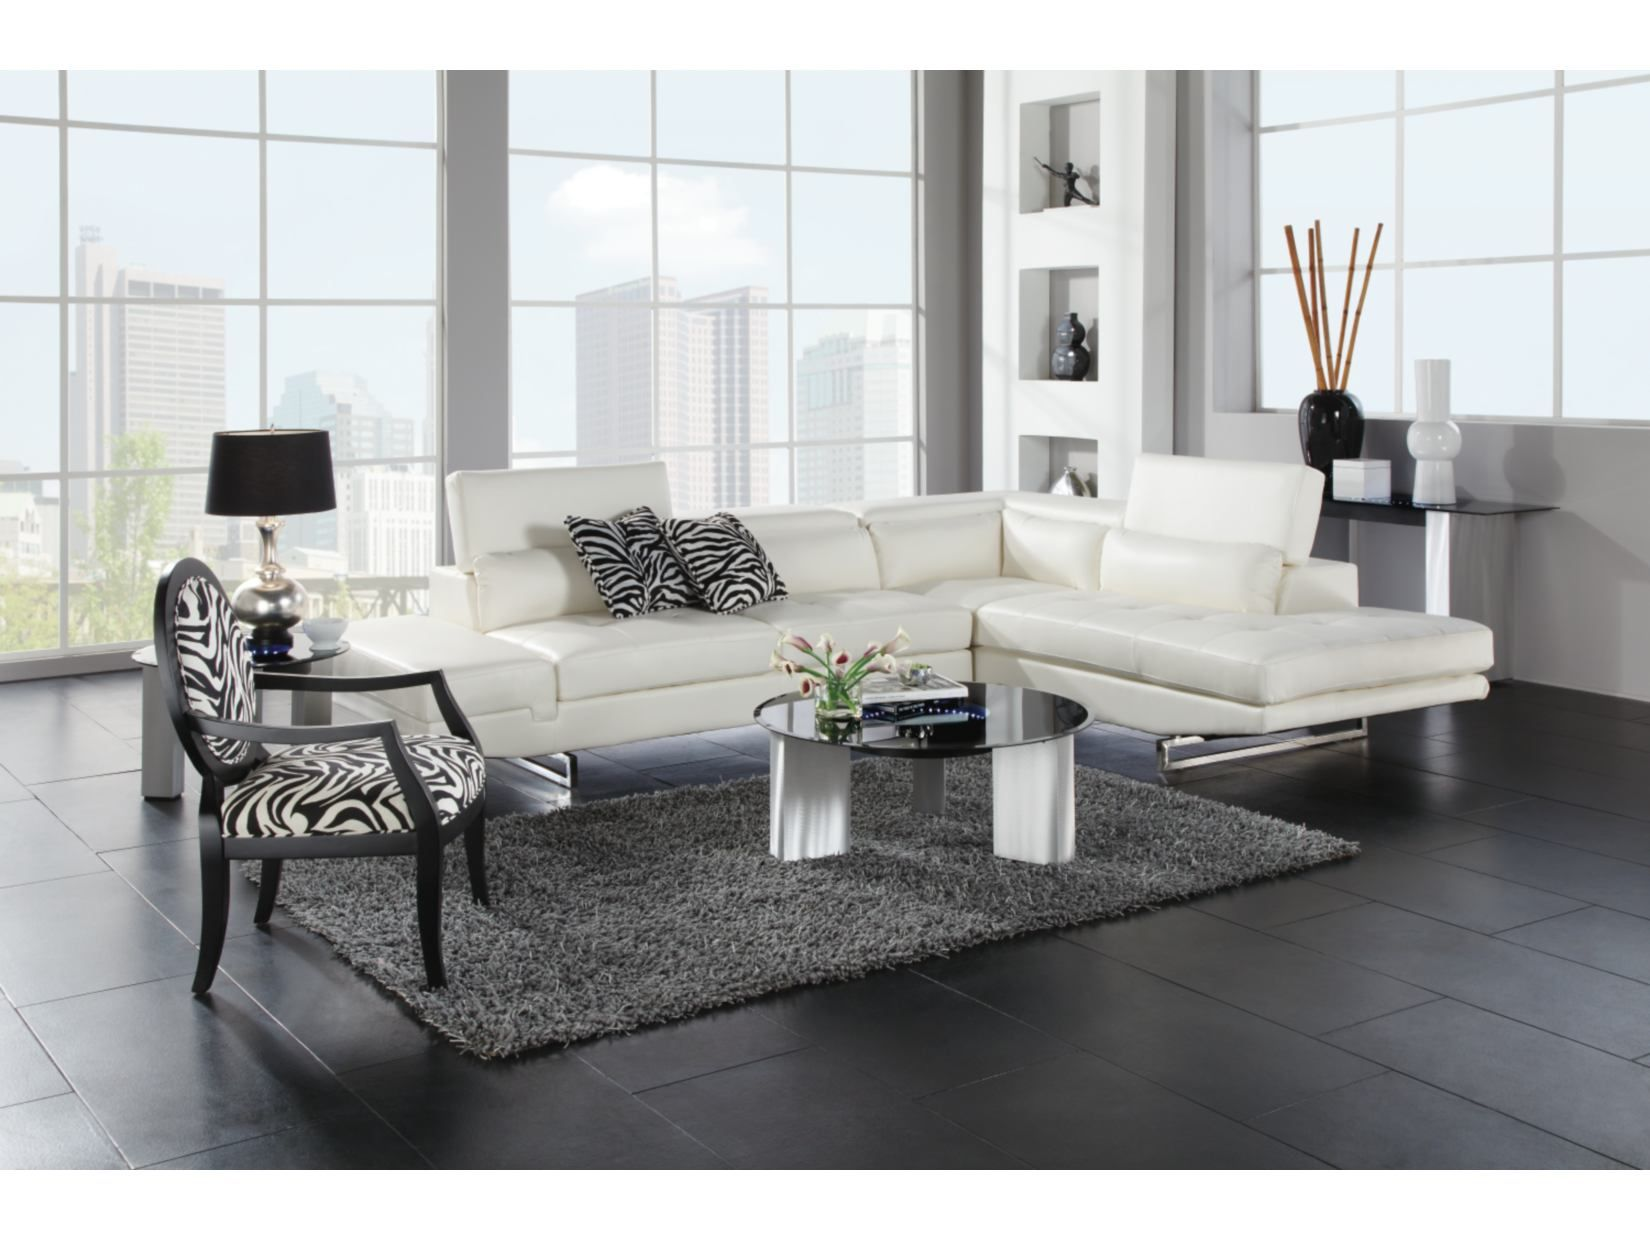 Living Room Sets Value City Furniture this couch is perfect, looks so comfy | interior design to-do